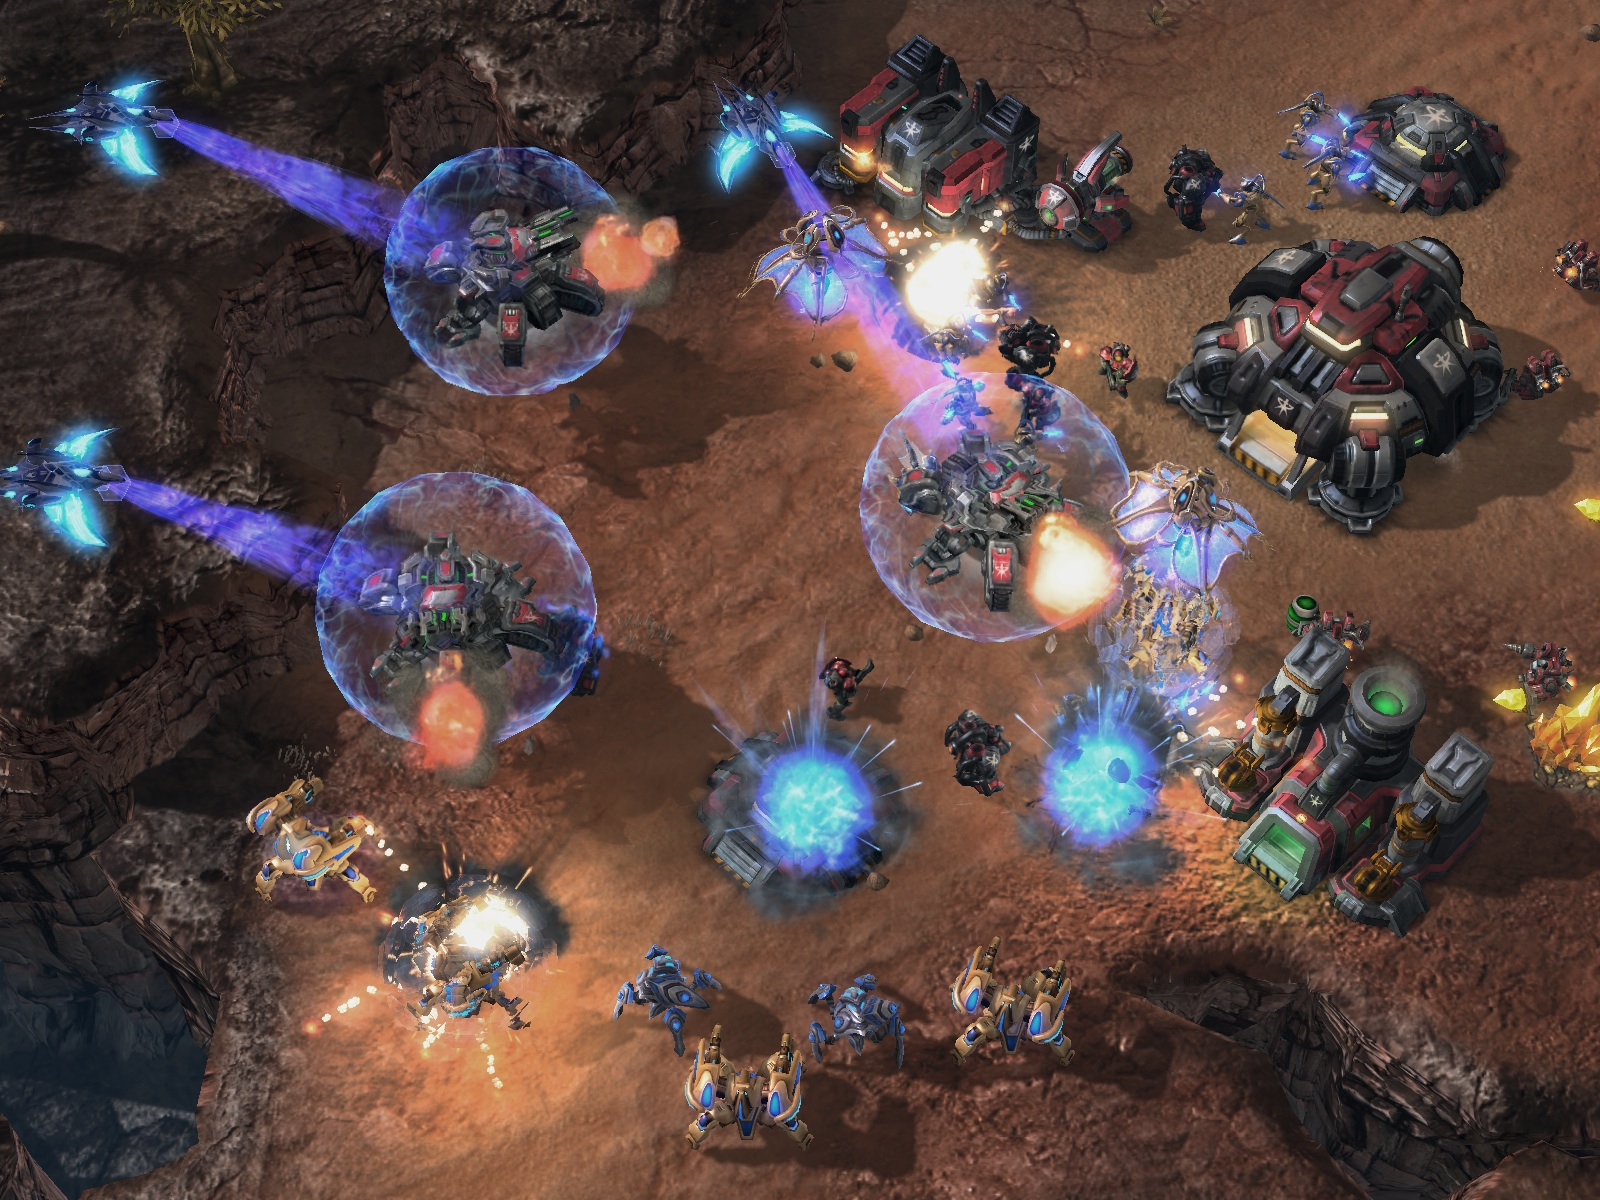 Nuevo video gameplay de Starcraft 2 nos muestra la Mothership Protoss [SWEEET!!]